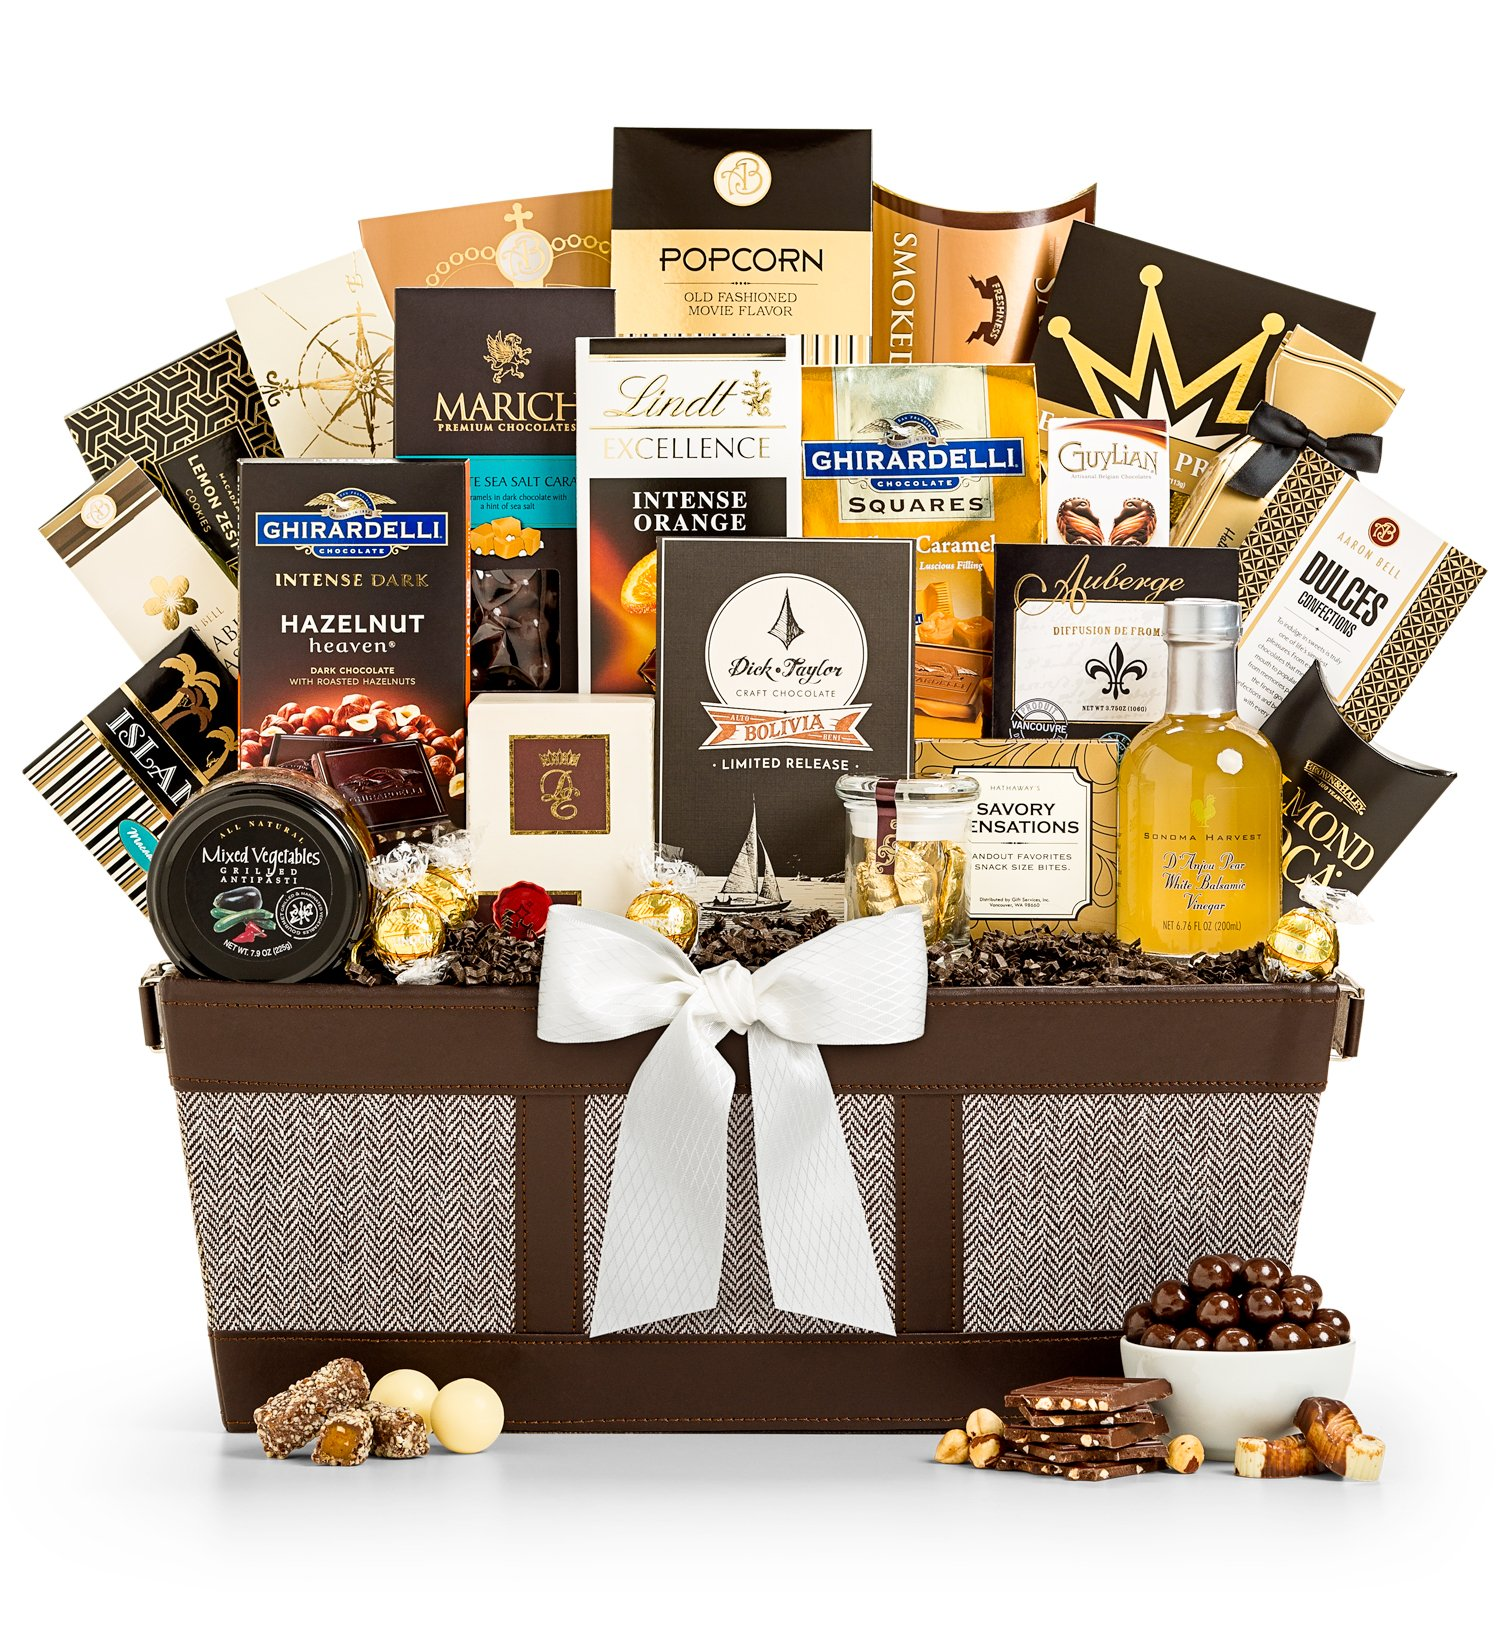 Fit for Royalty Gourmet Gift Basket - Premium Gift Basket for Men or Women by GiftTree